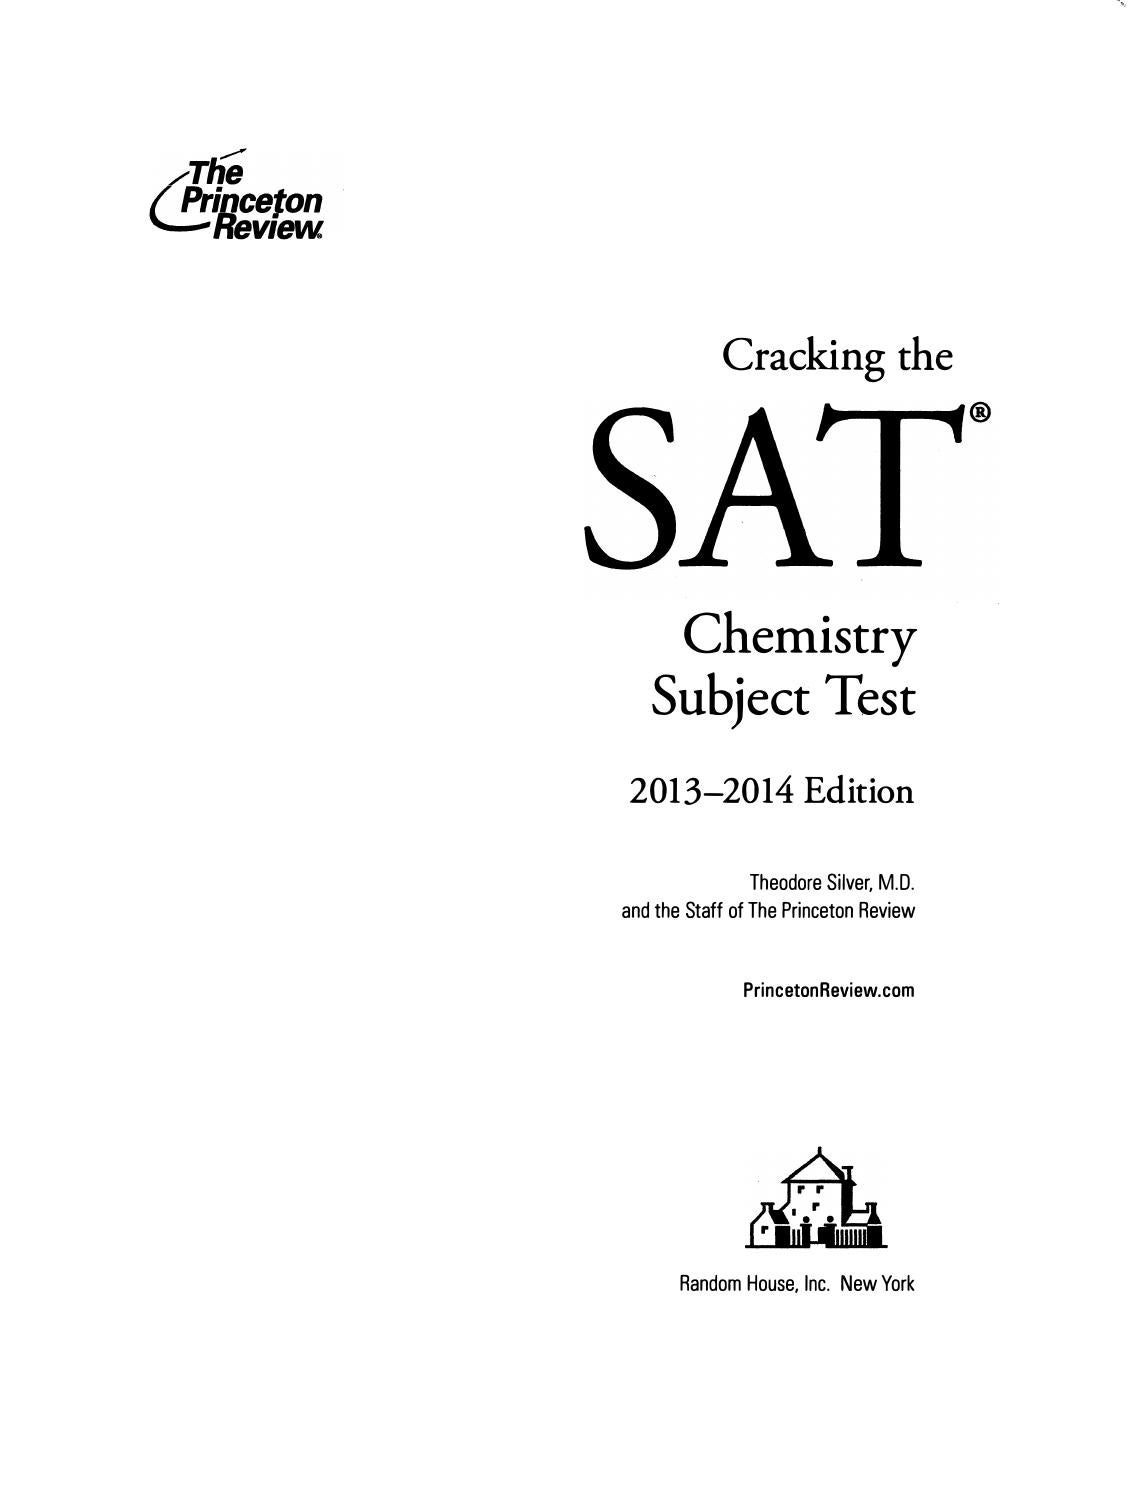 Preview cracking the sat chemistry subject test 2013 2014